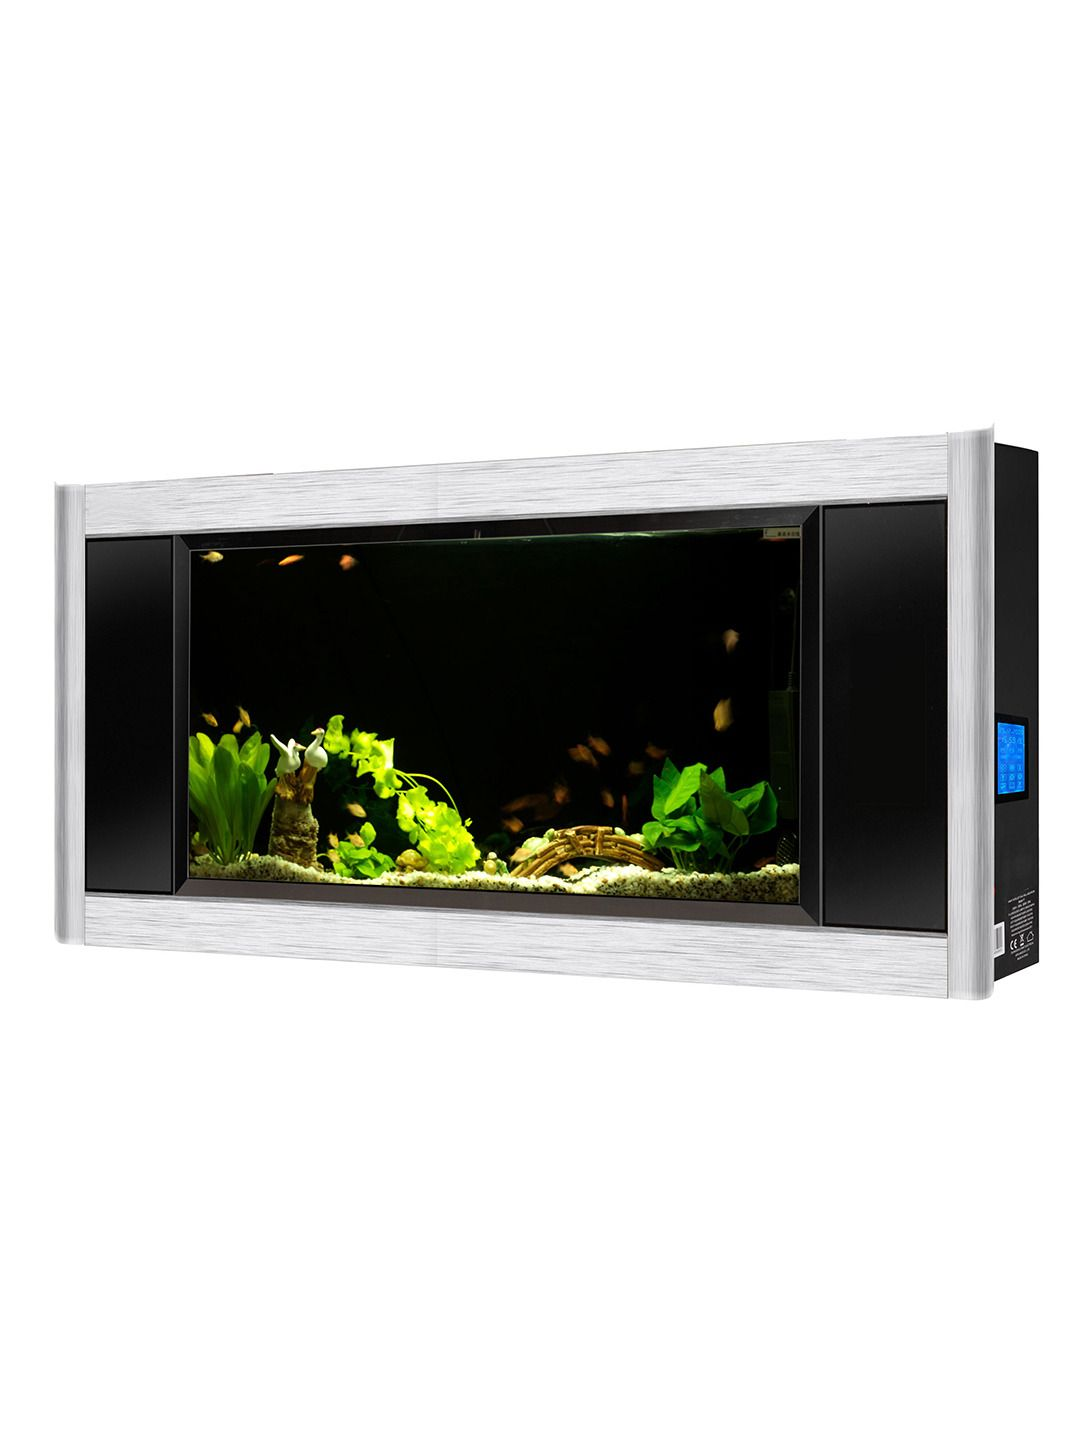 Panoramic Wall Aquarium | Wall aquarium, Aquariums and Walls